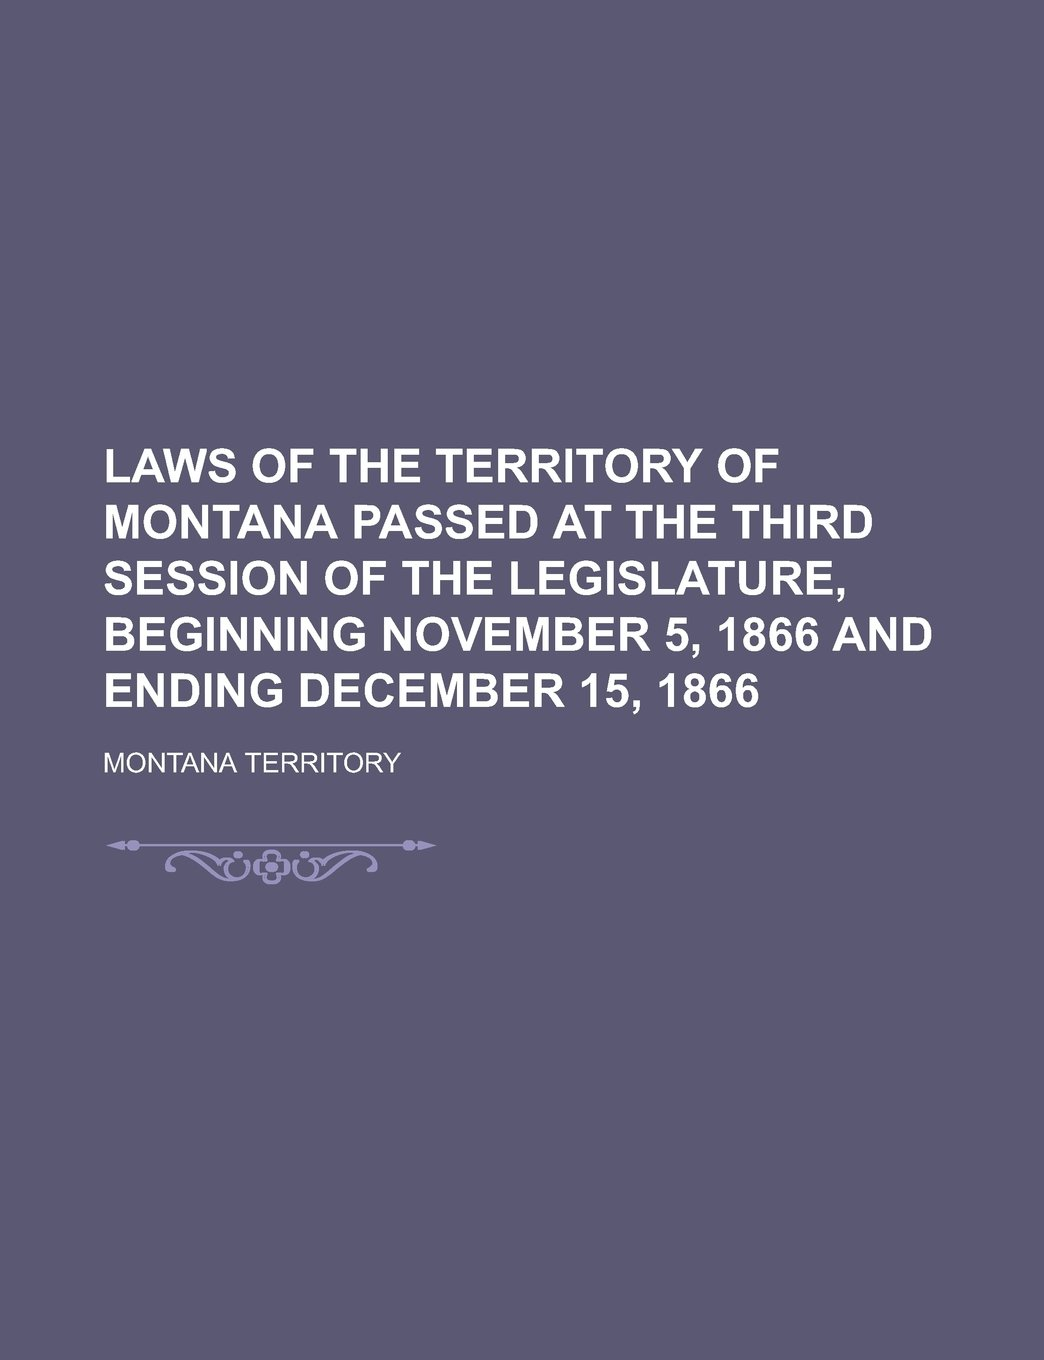 Laws of the Territory of Montana Passed at the Third Session of the Legislature, Beginning November 5, 1866 and Ending December 15, 1866 ebook